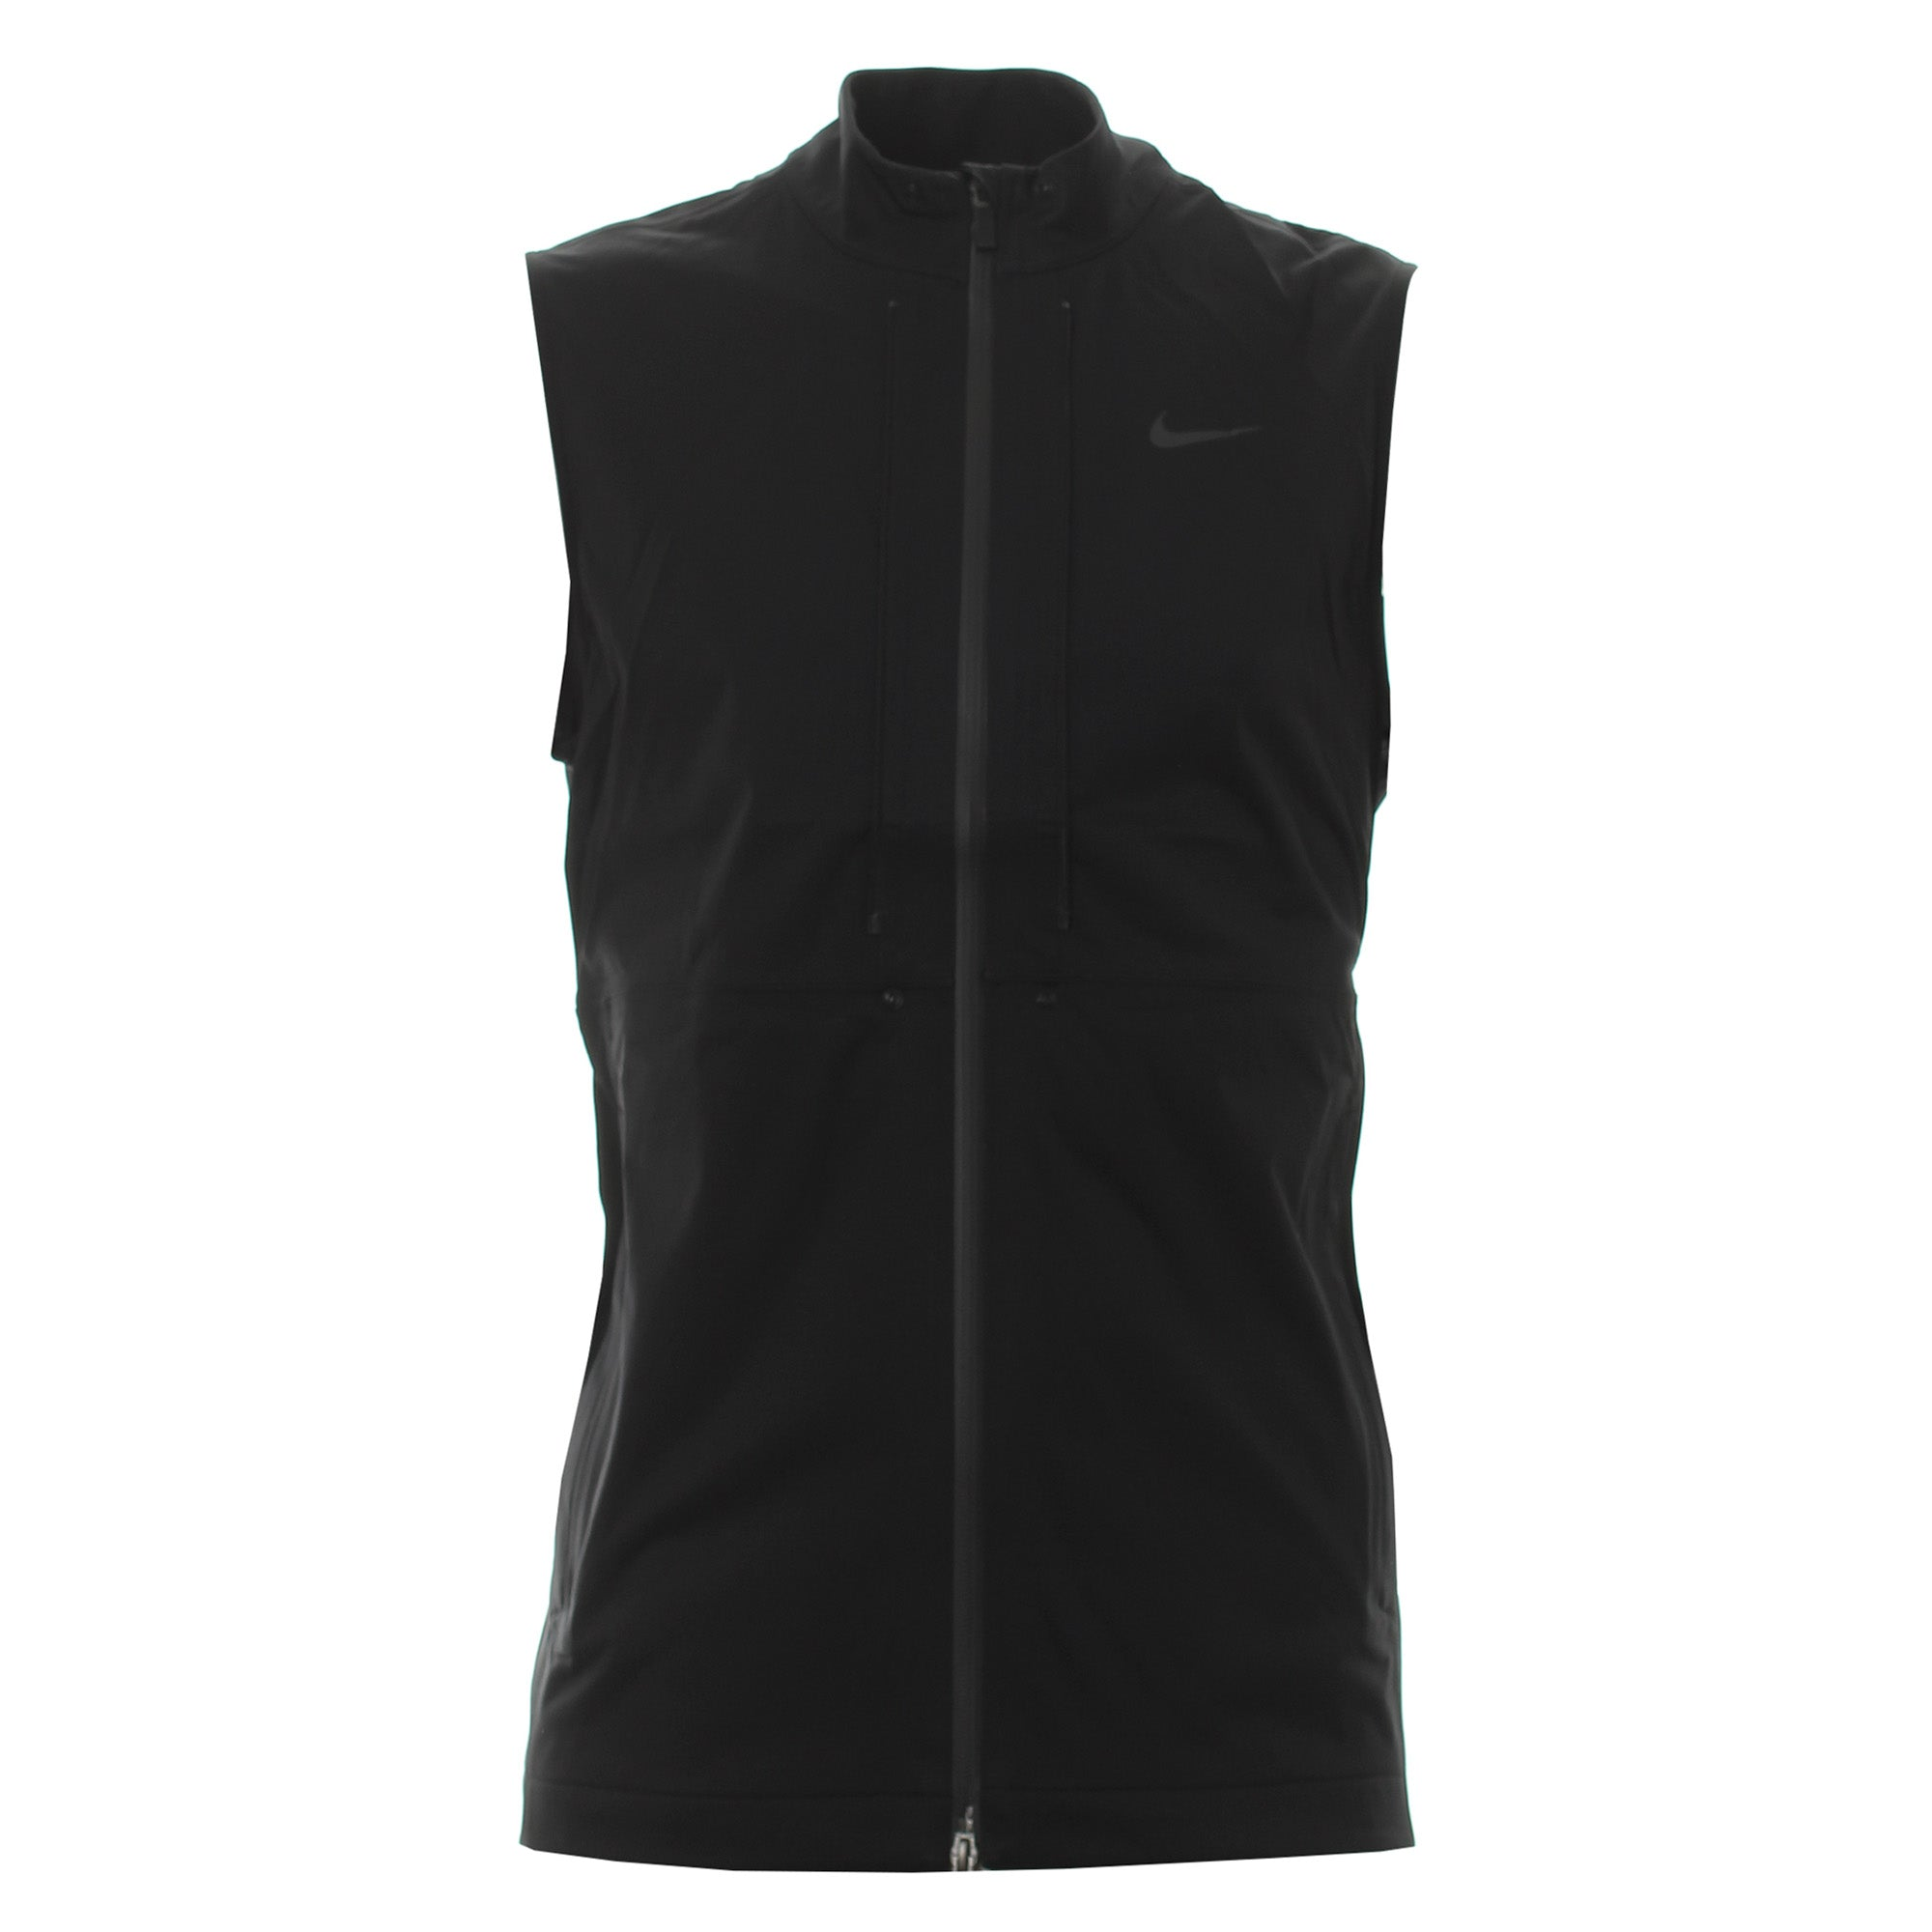 Nike Golf Hypershield Rapid Adapt Jacket